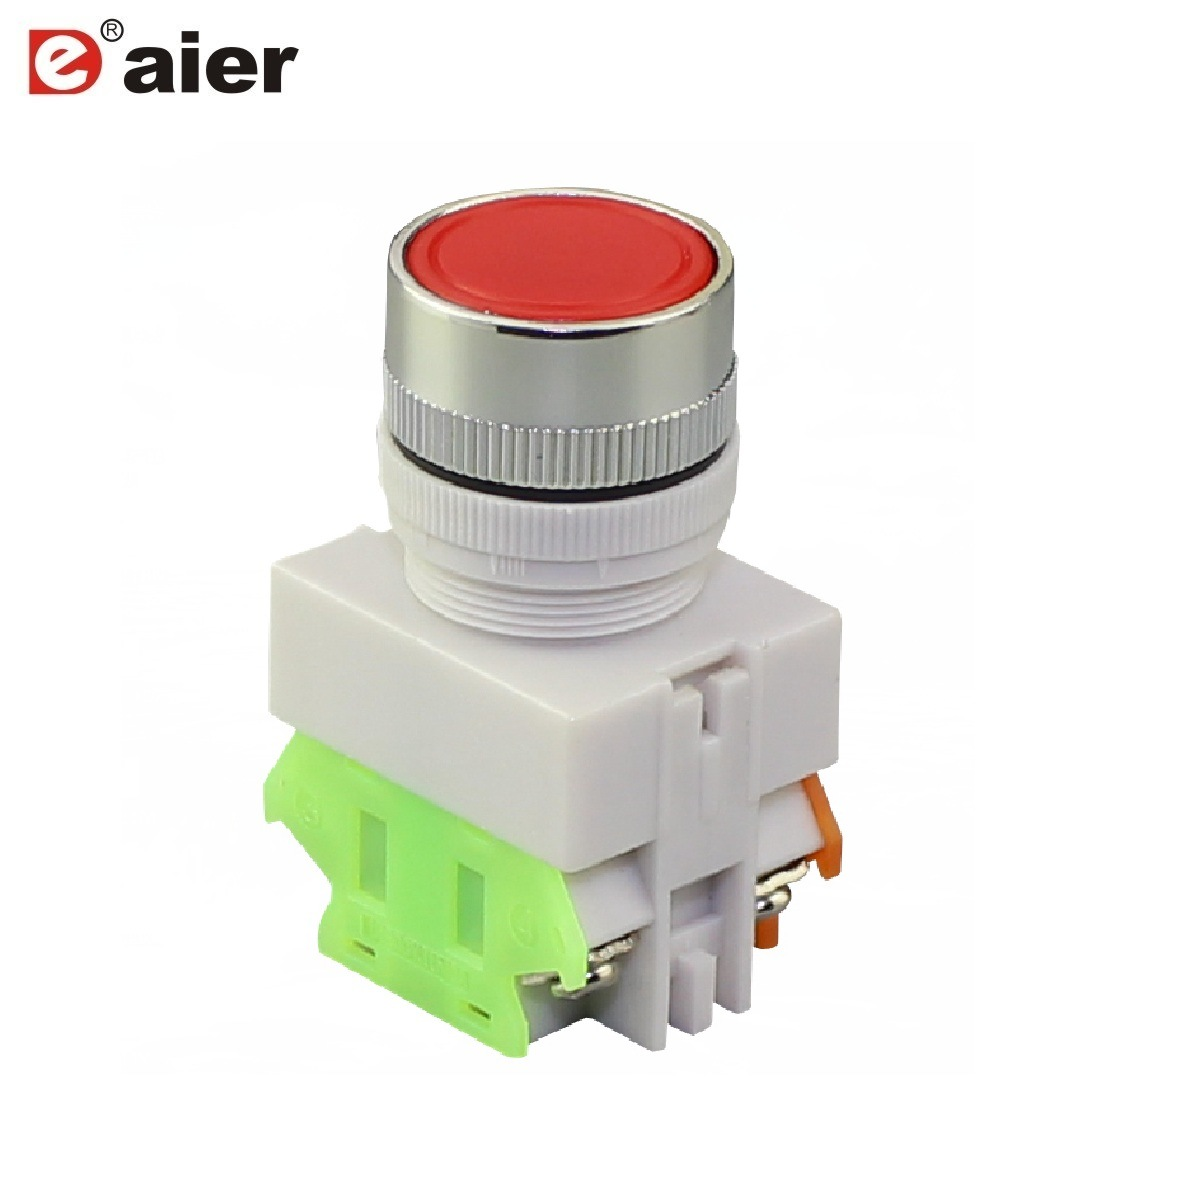 China 22mm on on 2 Step Momentary Push Pull Button Switch - China ...